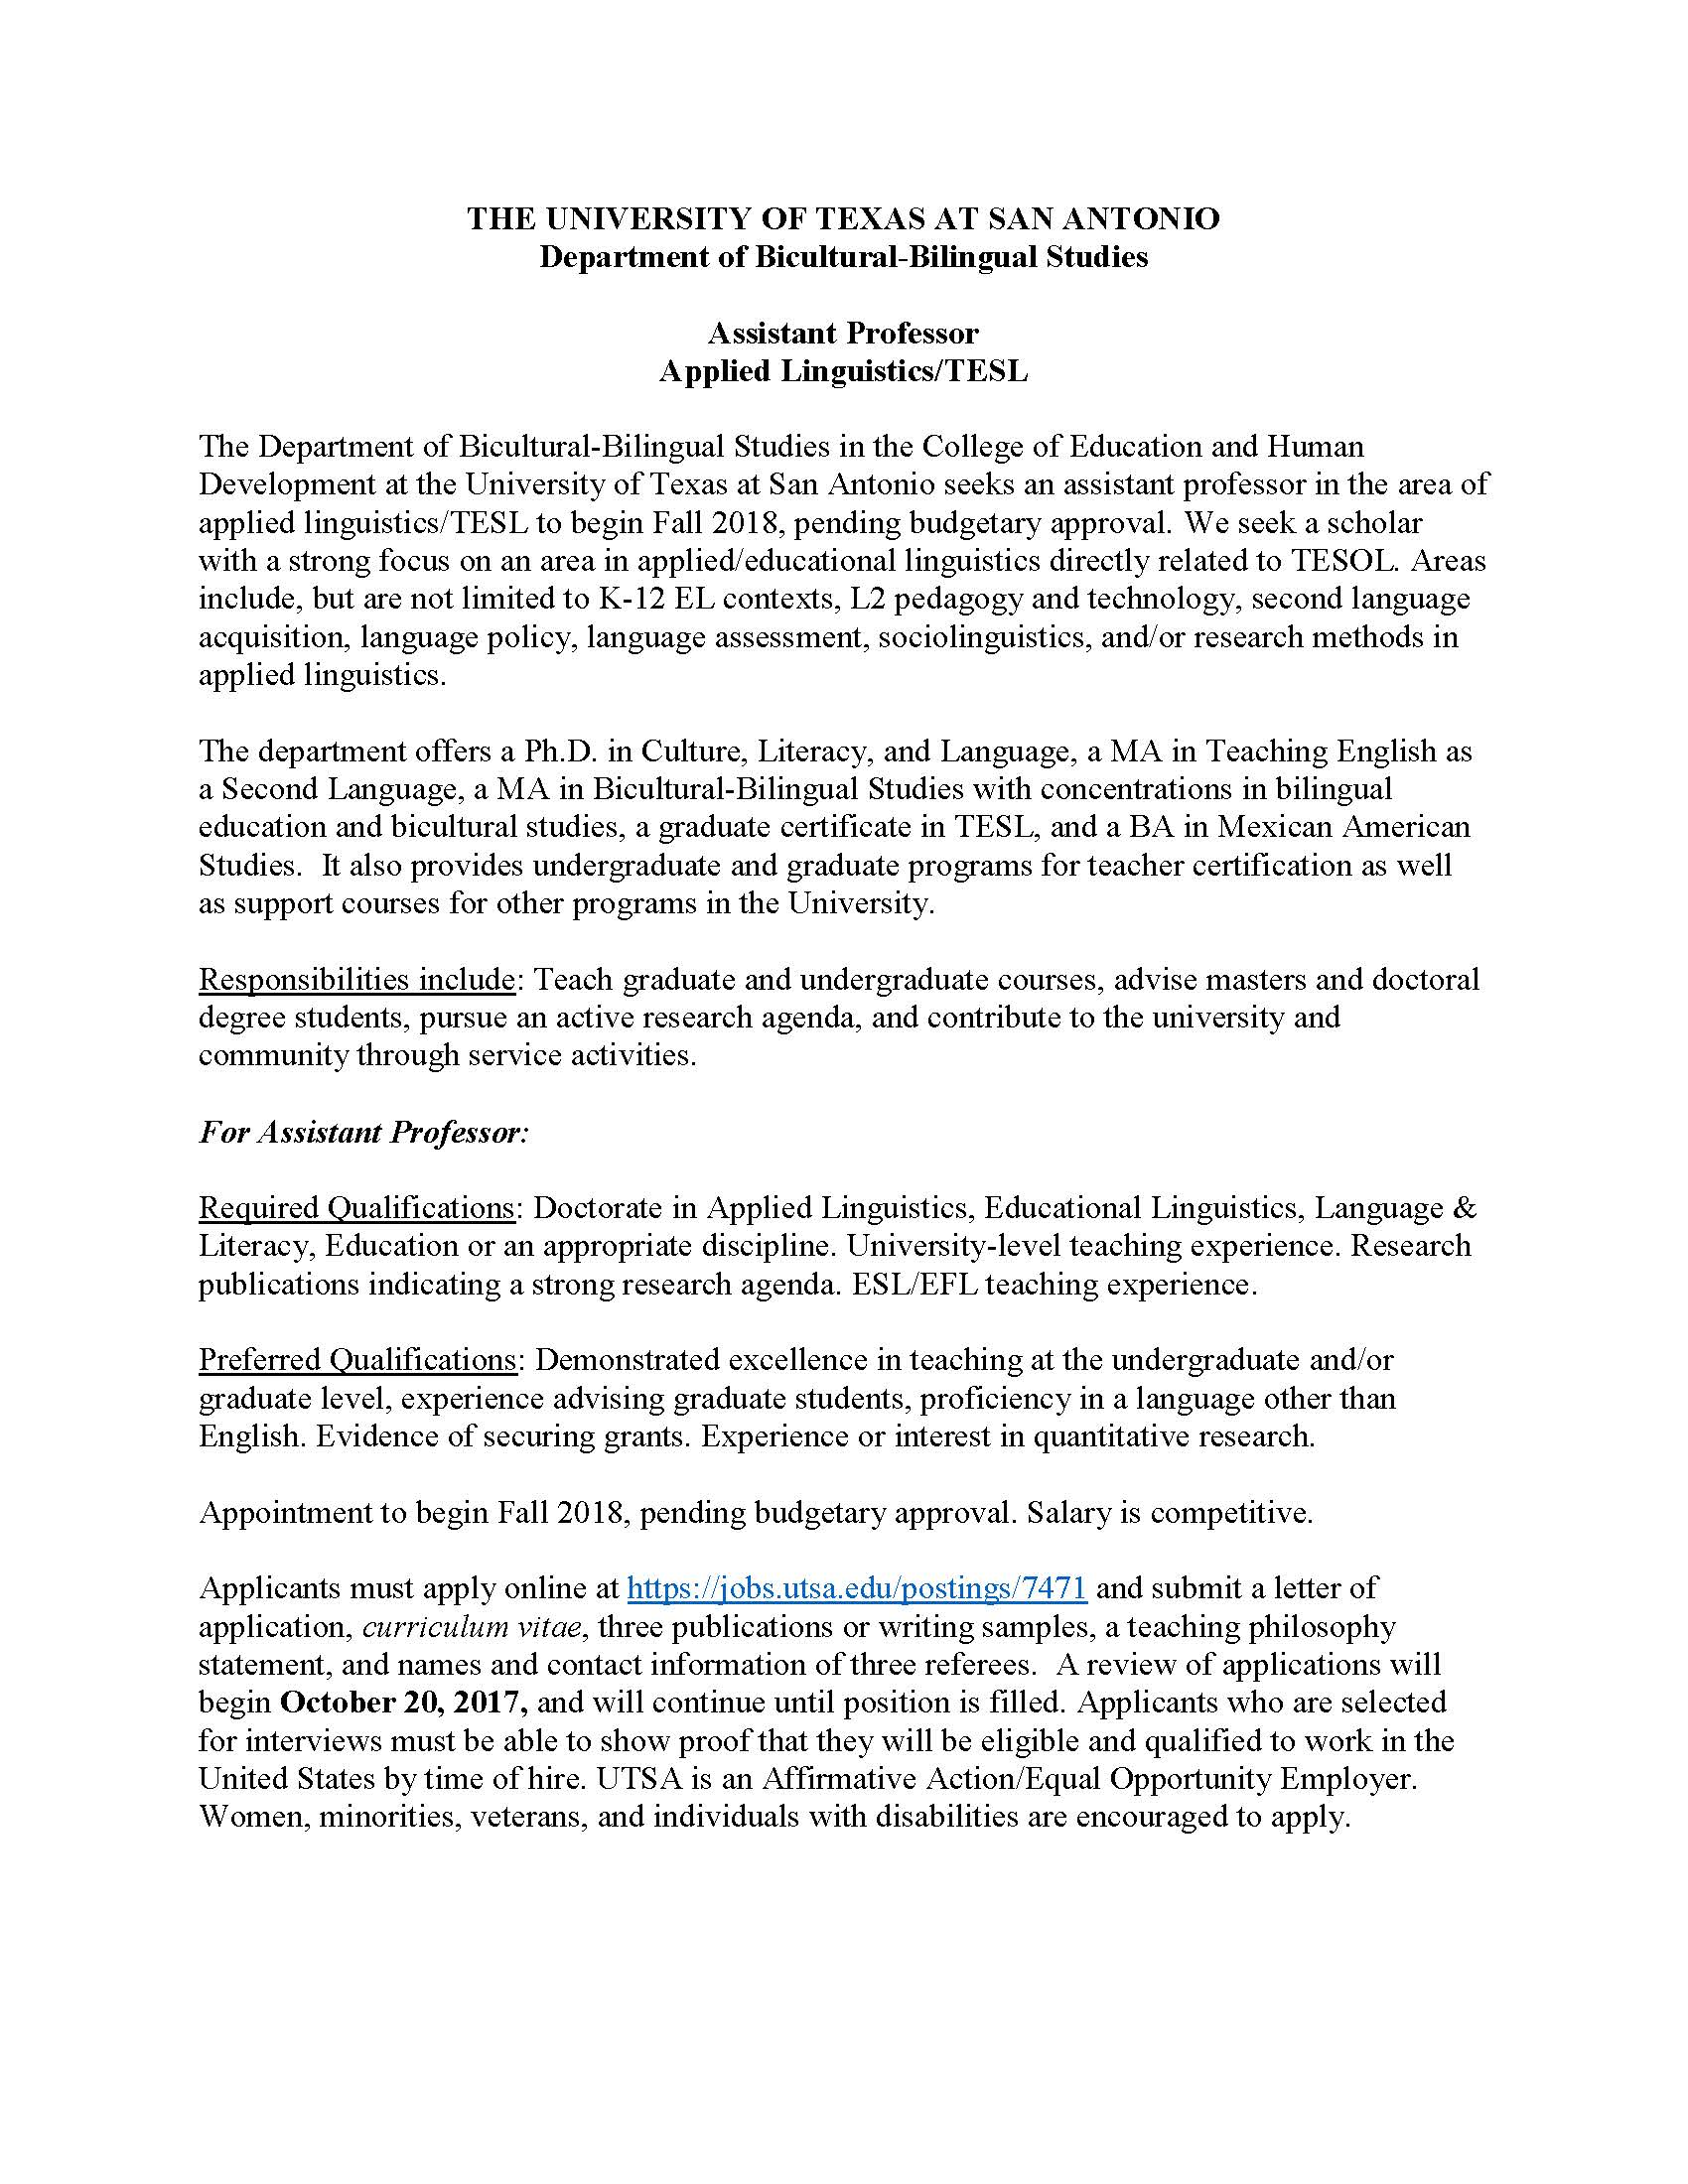 Job Announcement: Assistant Professor Applied Linguistics ...